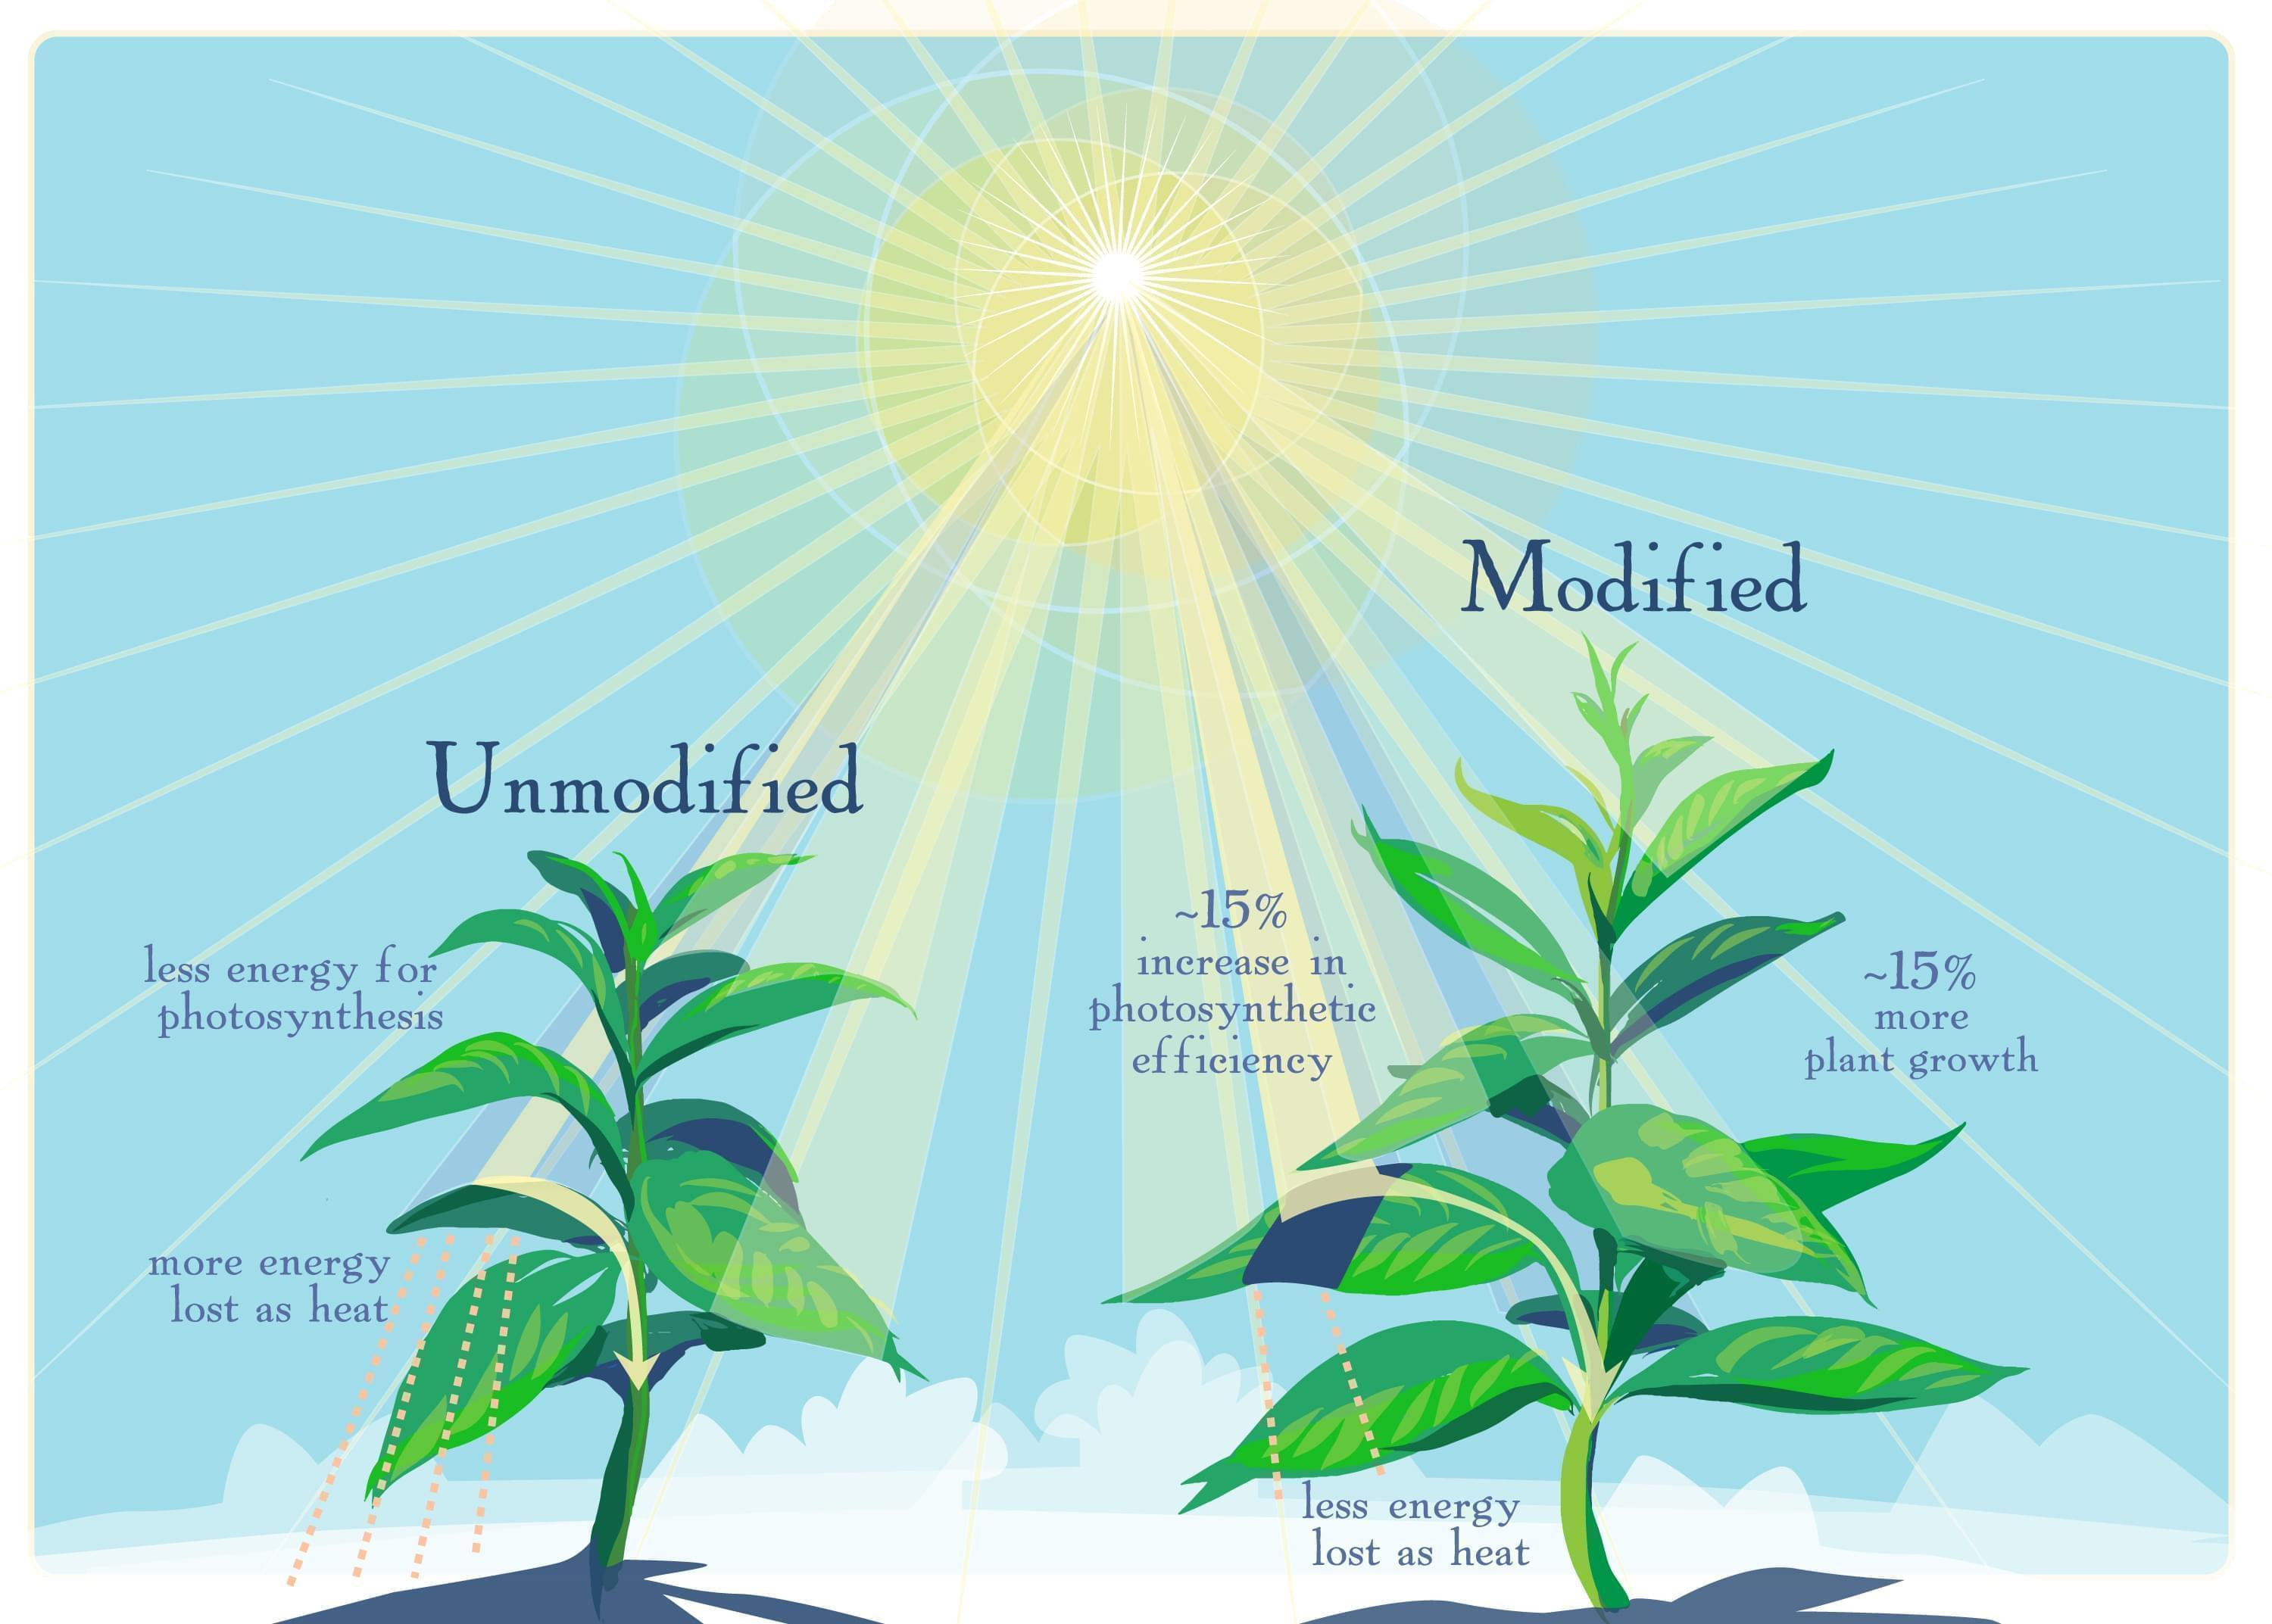 Graphic showing photosynthesis research.